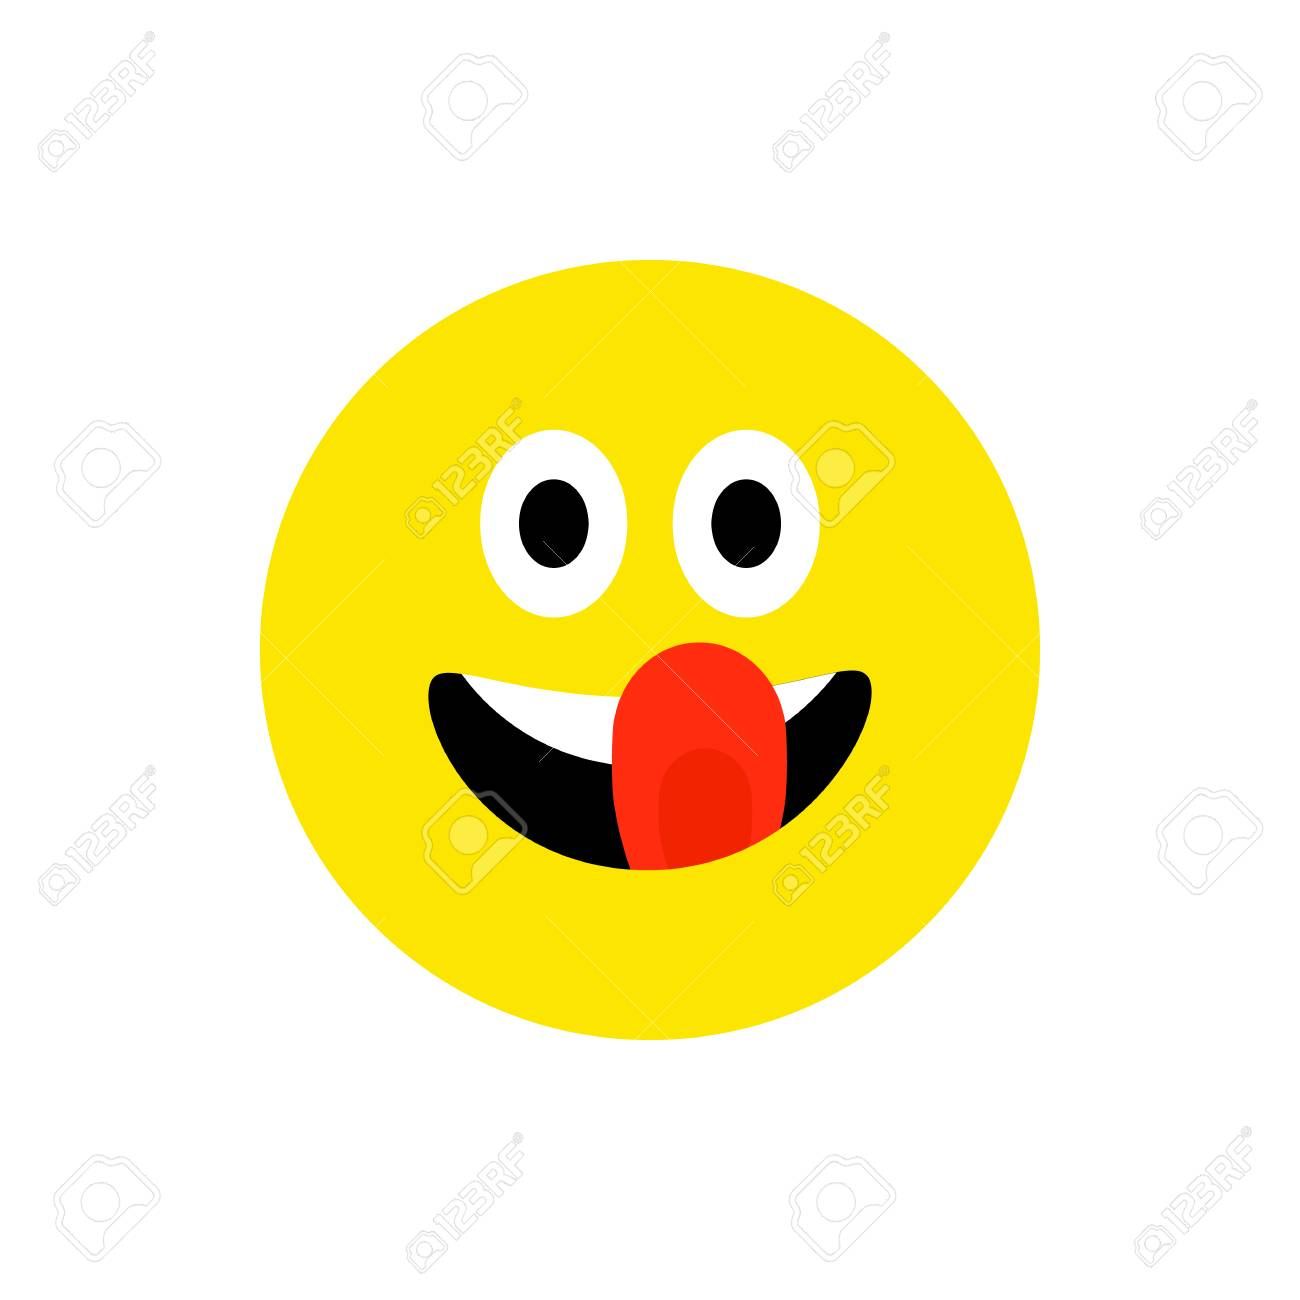 Happy face smiling emoji with open mouth  Funny Smile flat style